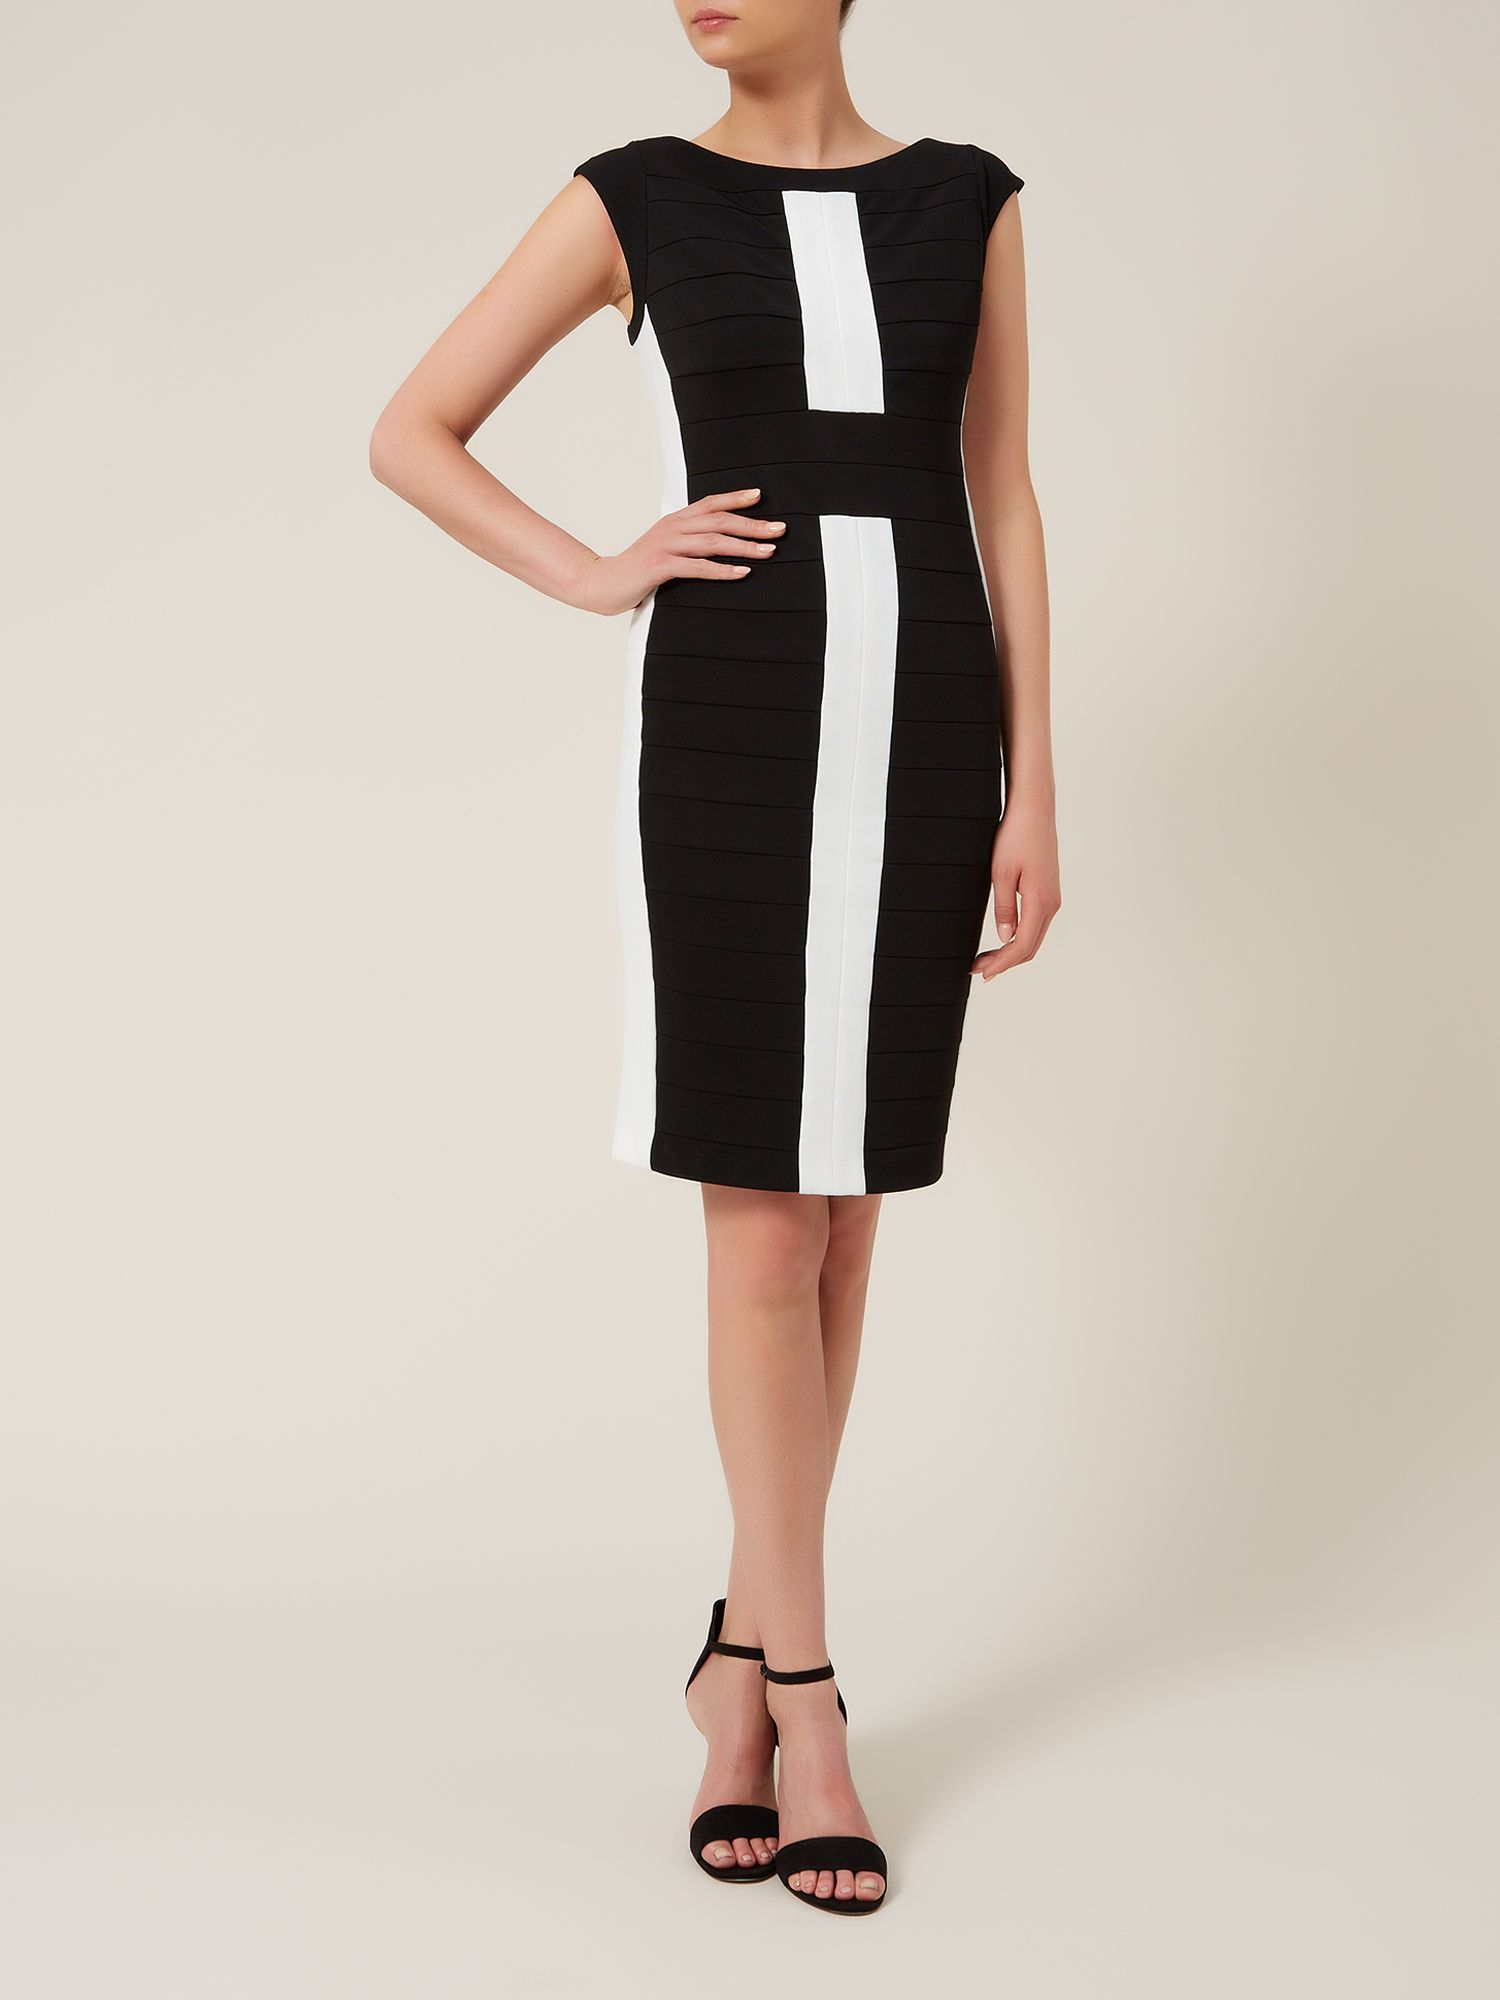 Black & Ivory Bandage Dress